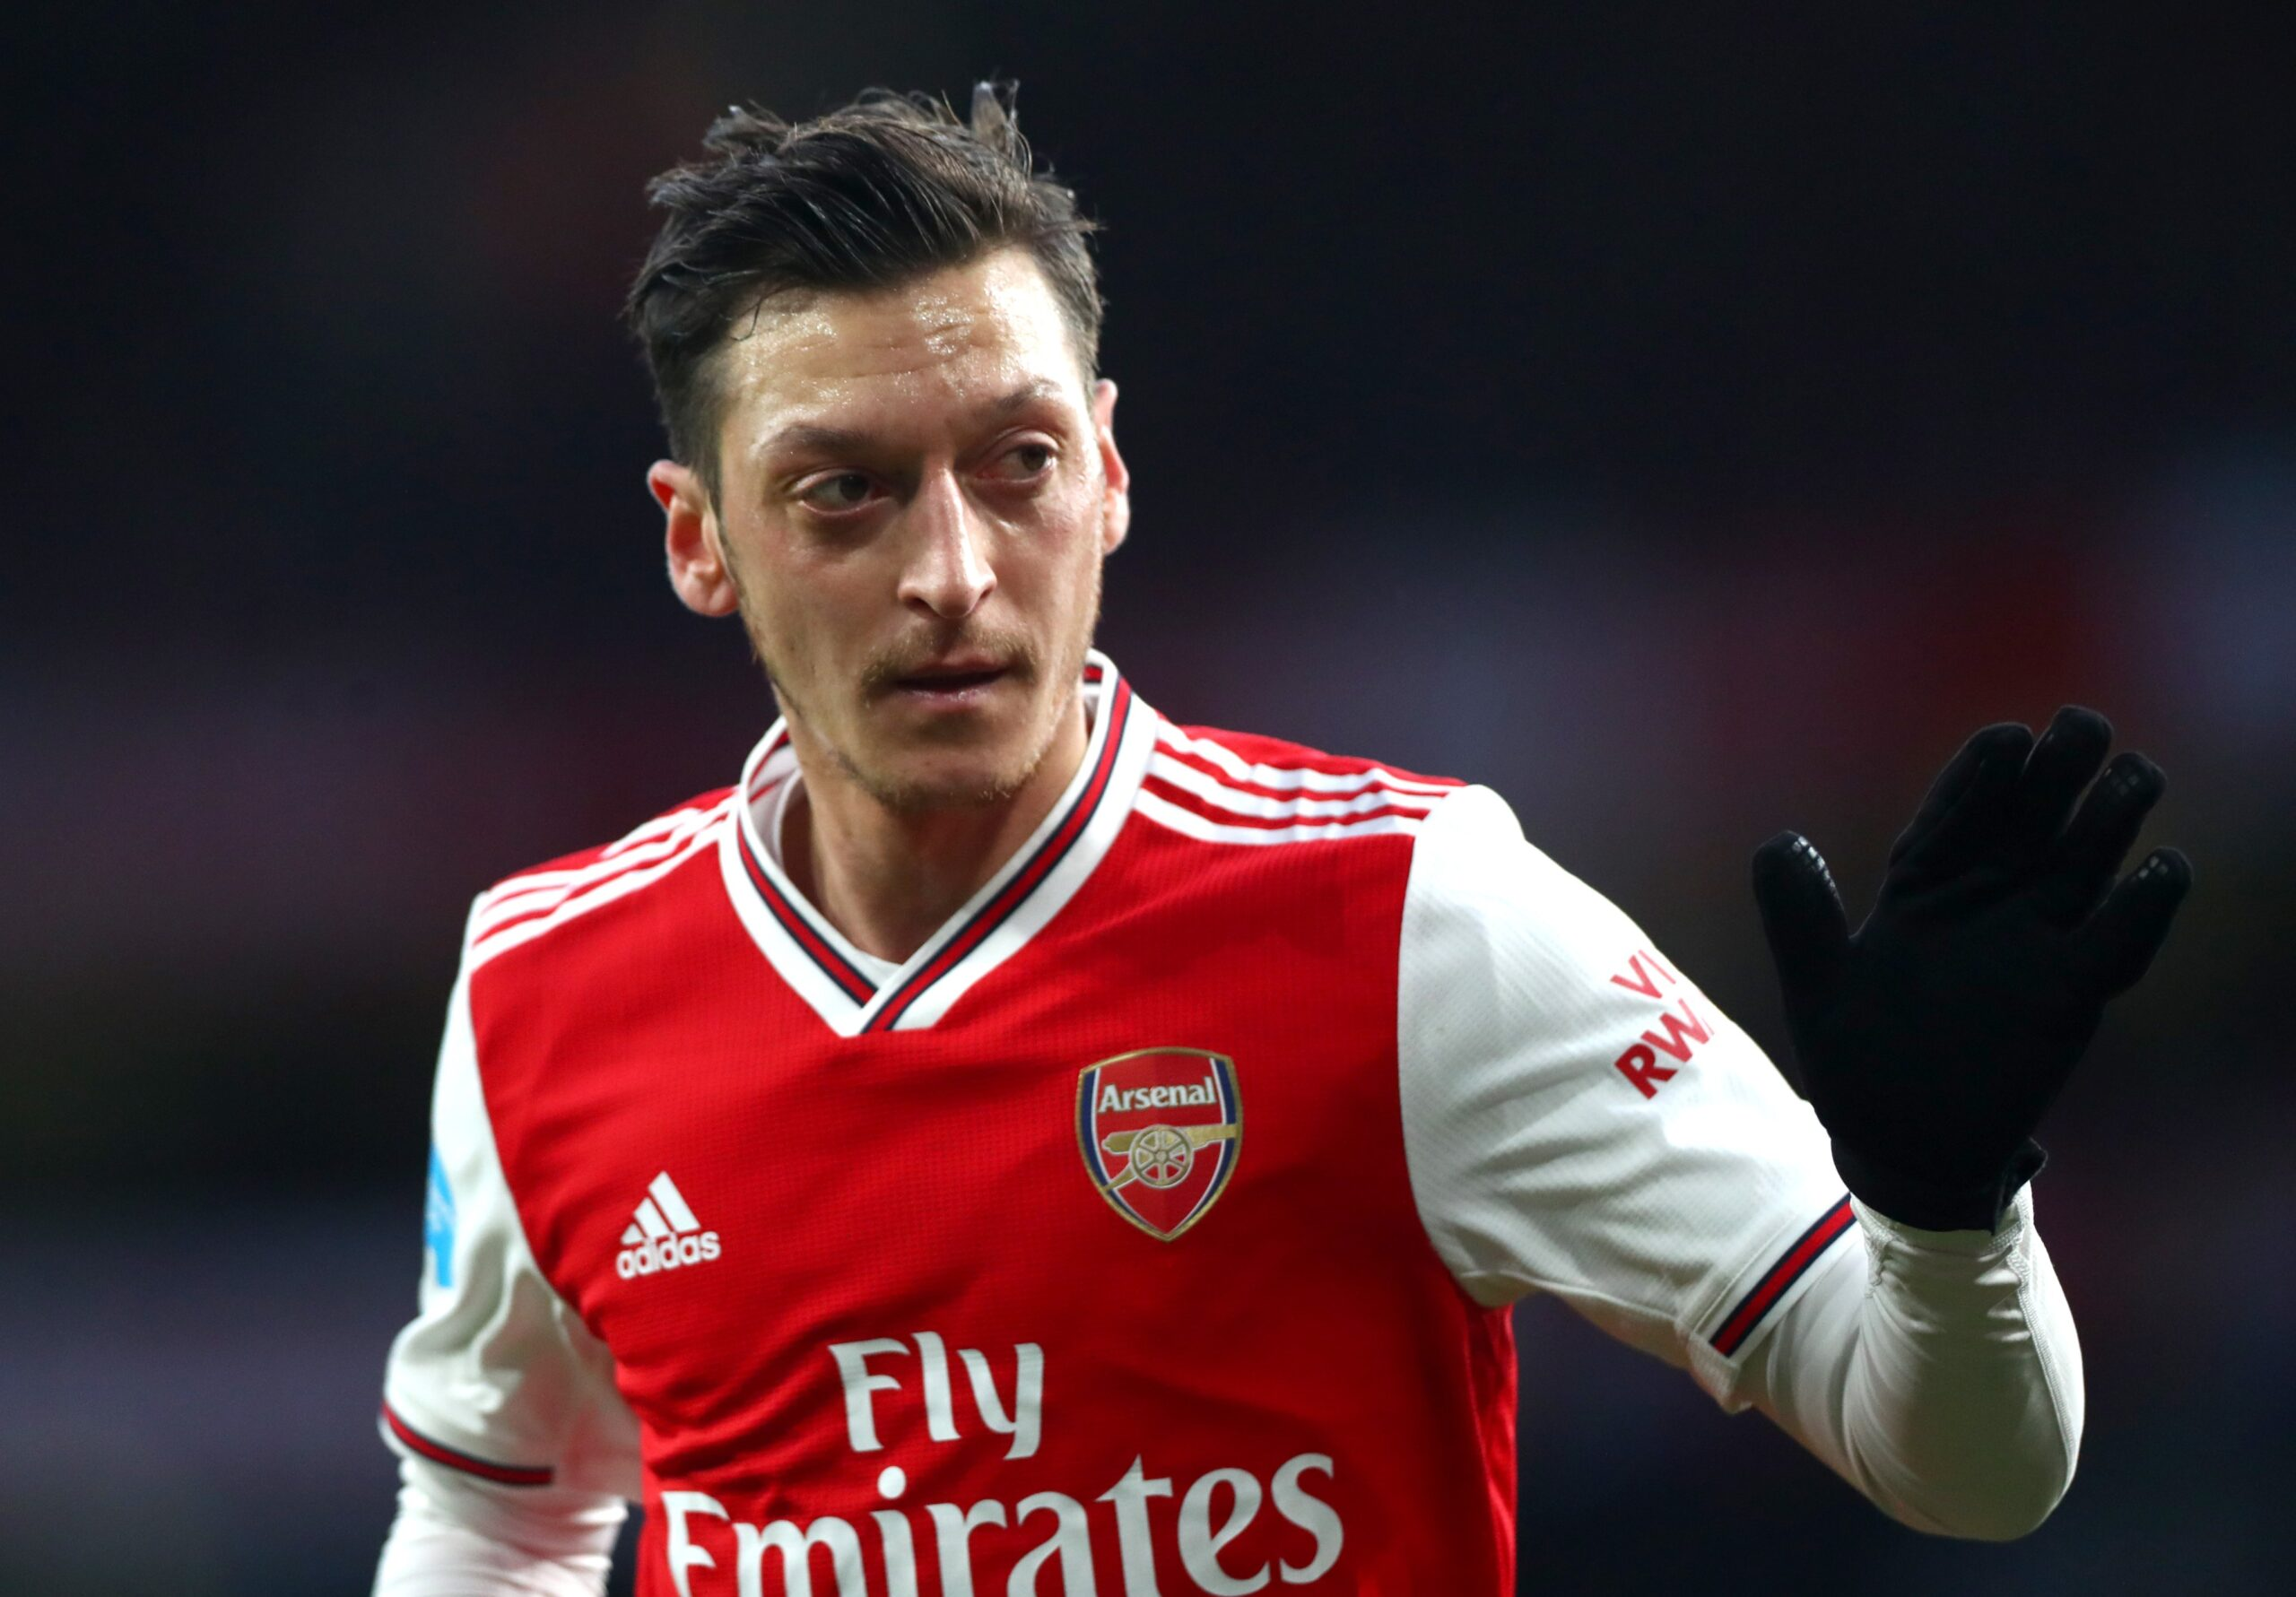 Ozil's future in Arsenal now looks uncertain.